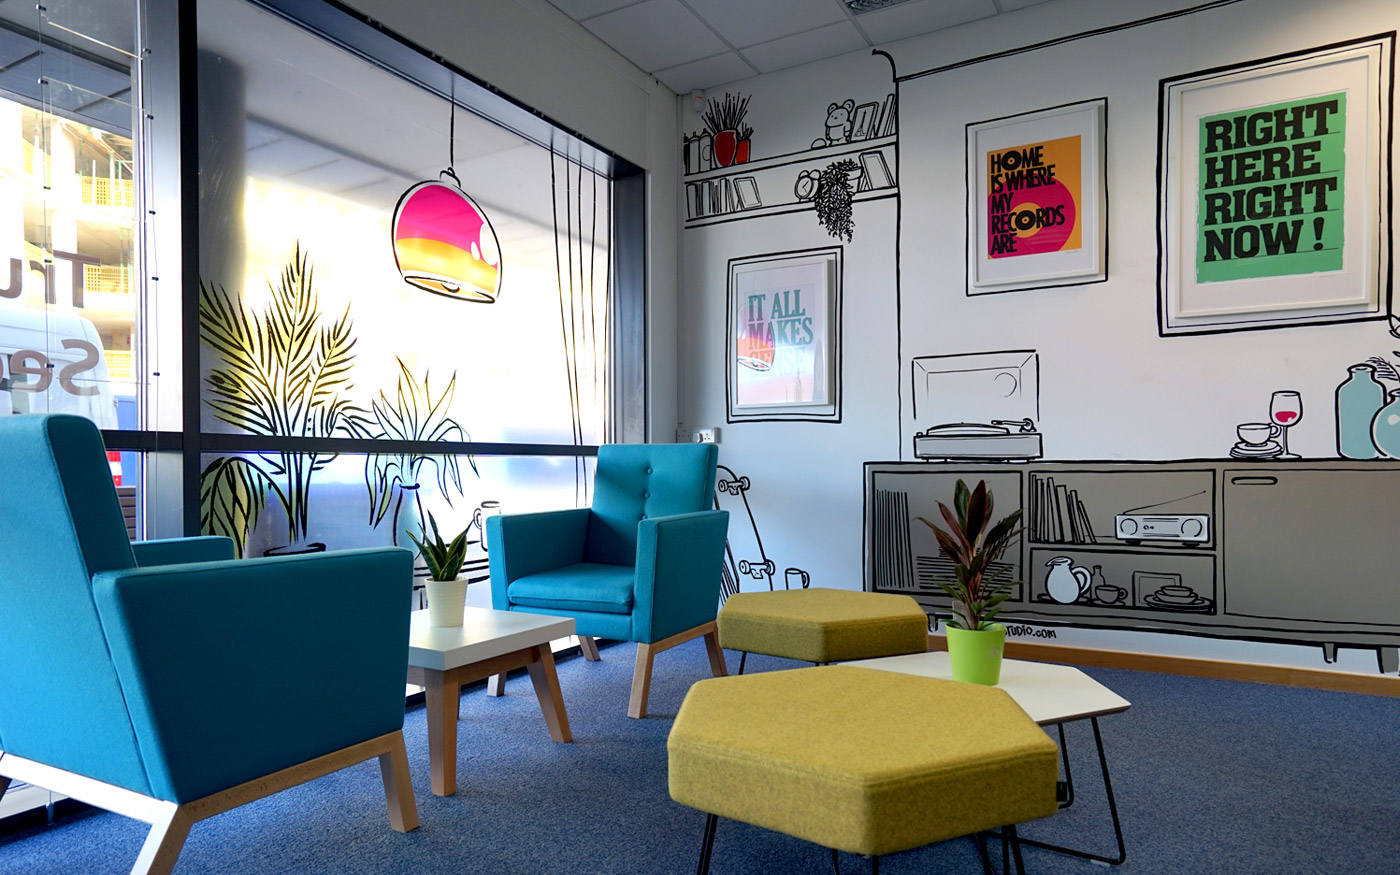 BU Lettings Office Interior Sketch Graffiti Murals & Vinyl Signage Bournemouth by Paintshop Studio